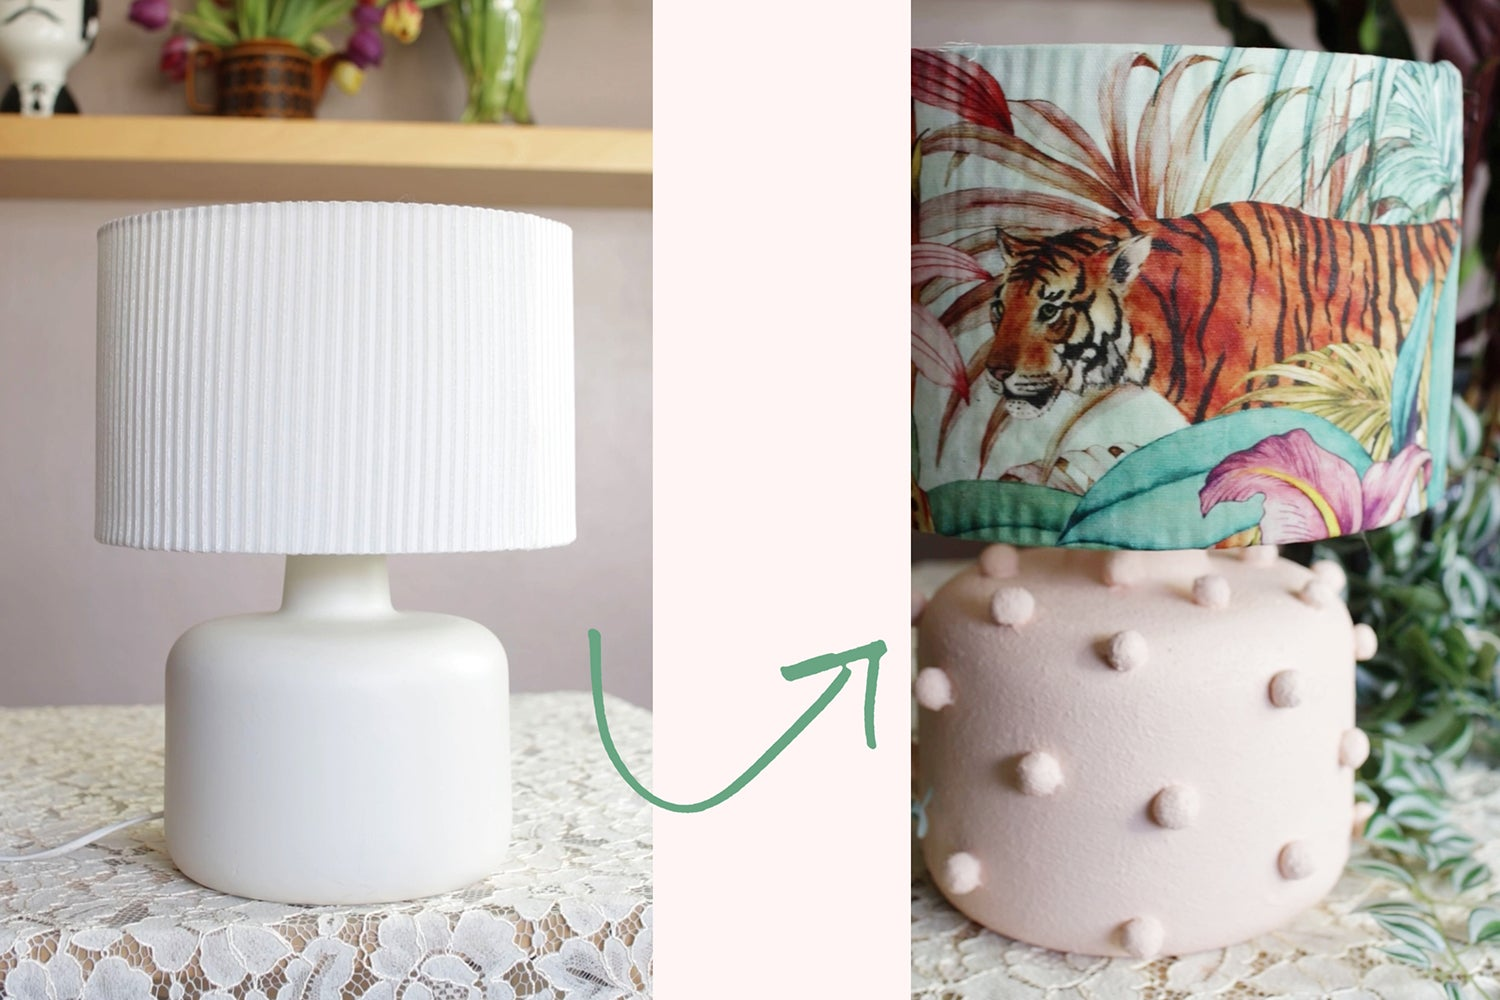 Let's Get Crafty: How to upcycle a lamp with a Joe Browns twist!